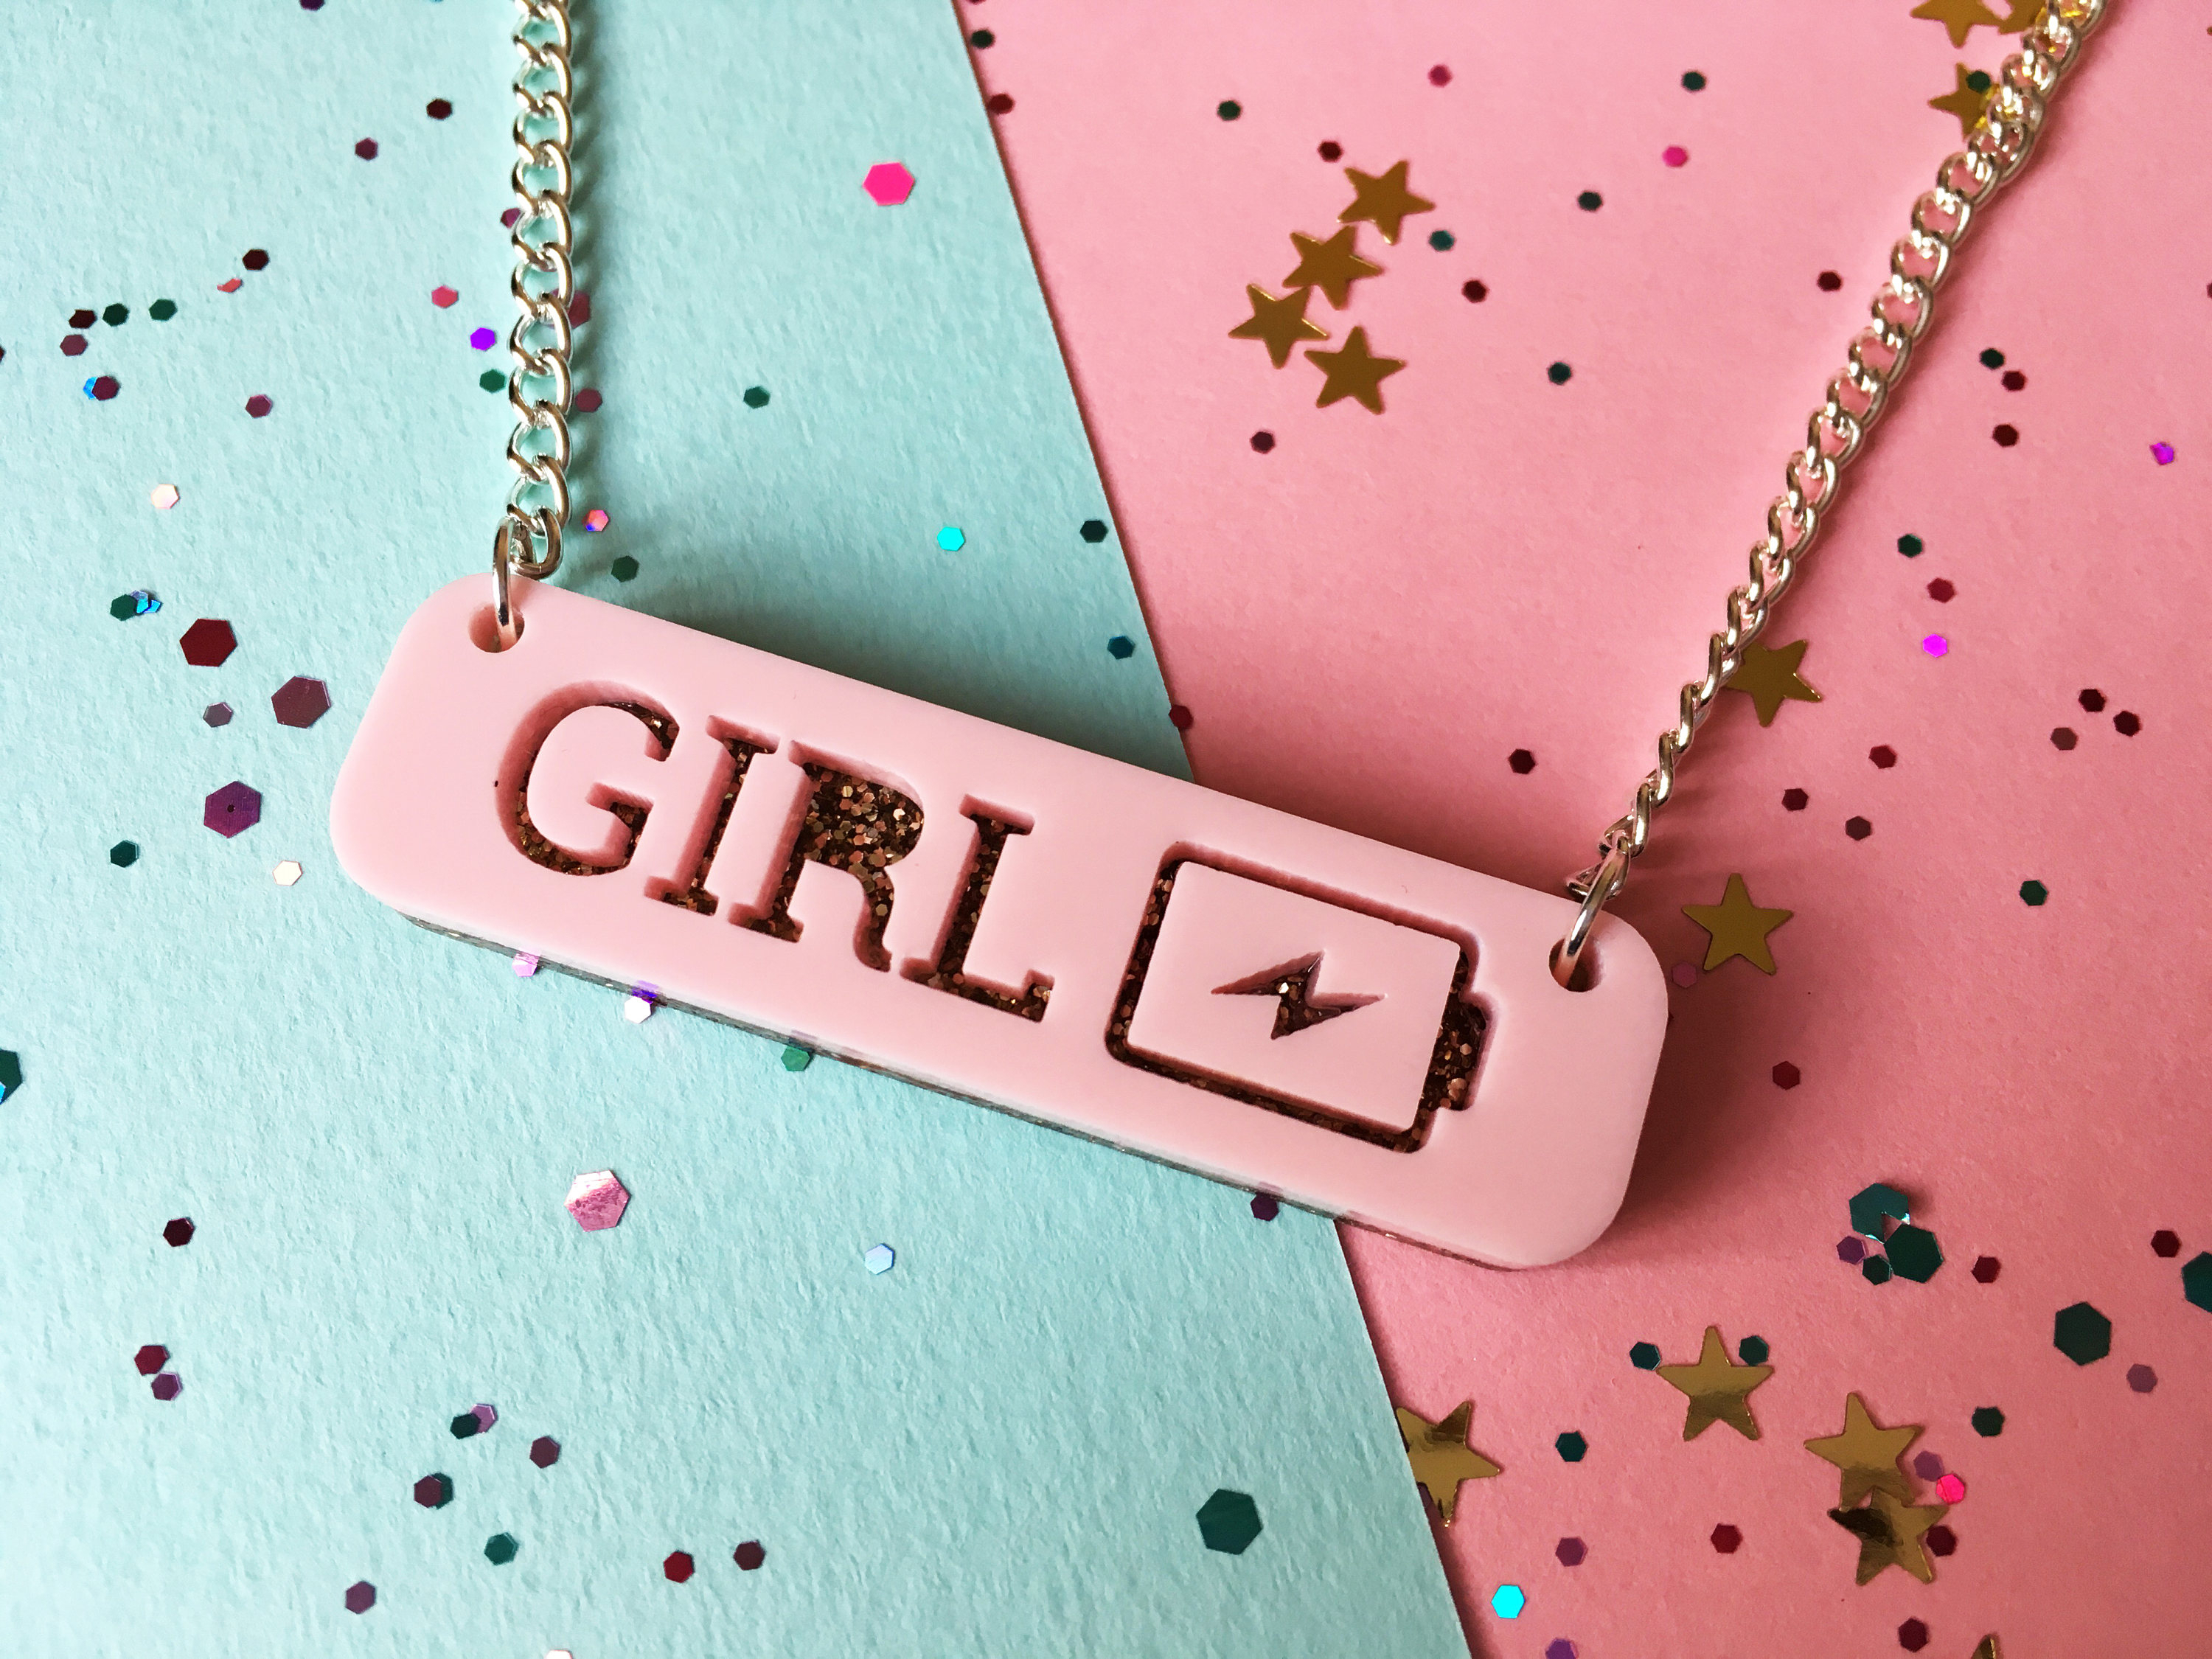 Girl Power Necklace, Girl Power Jewellery, Feminist Jewellery, Grl Pwr,  Spice Girls, Women Empowerment, Gift For Her, Sister Gift, Teen Gift In Newest Female Empowerment Motto Pendant Necklaces (View 13 of 25)